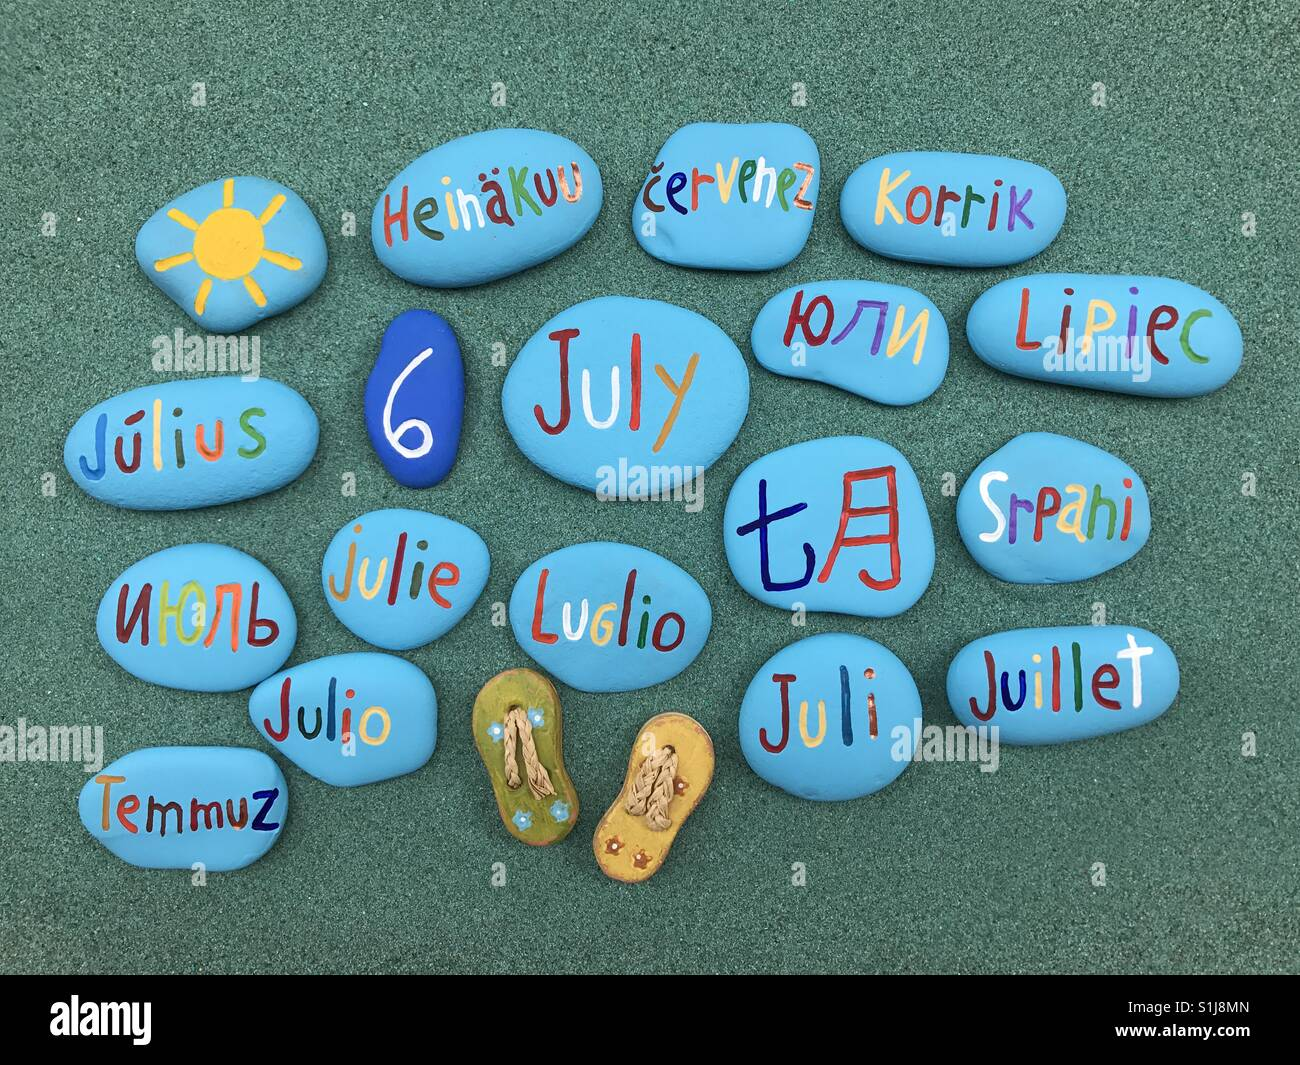 6 July, calendar date in many languages and stones - Stock Image